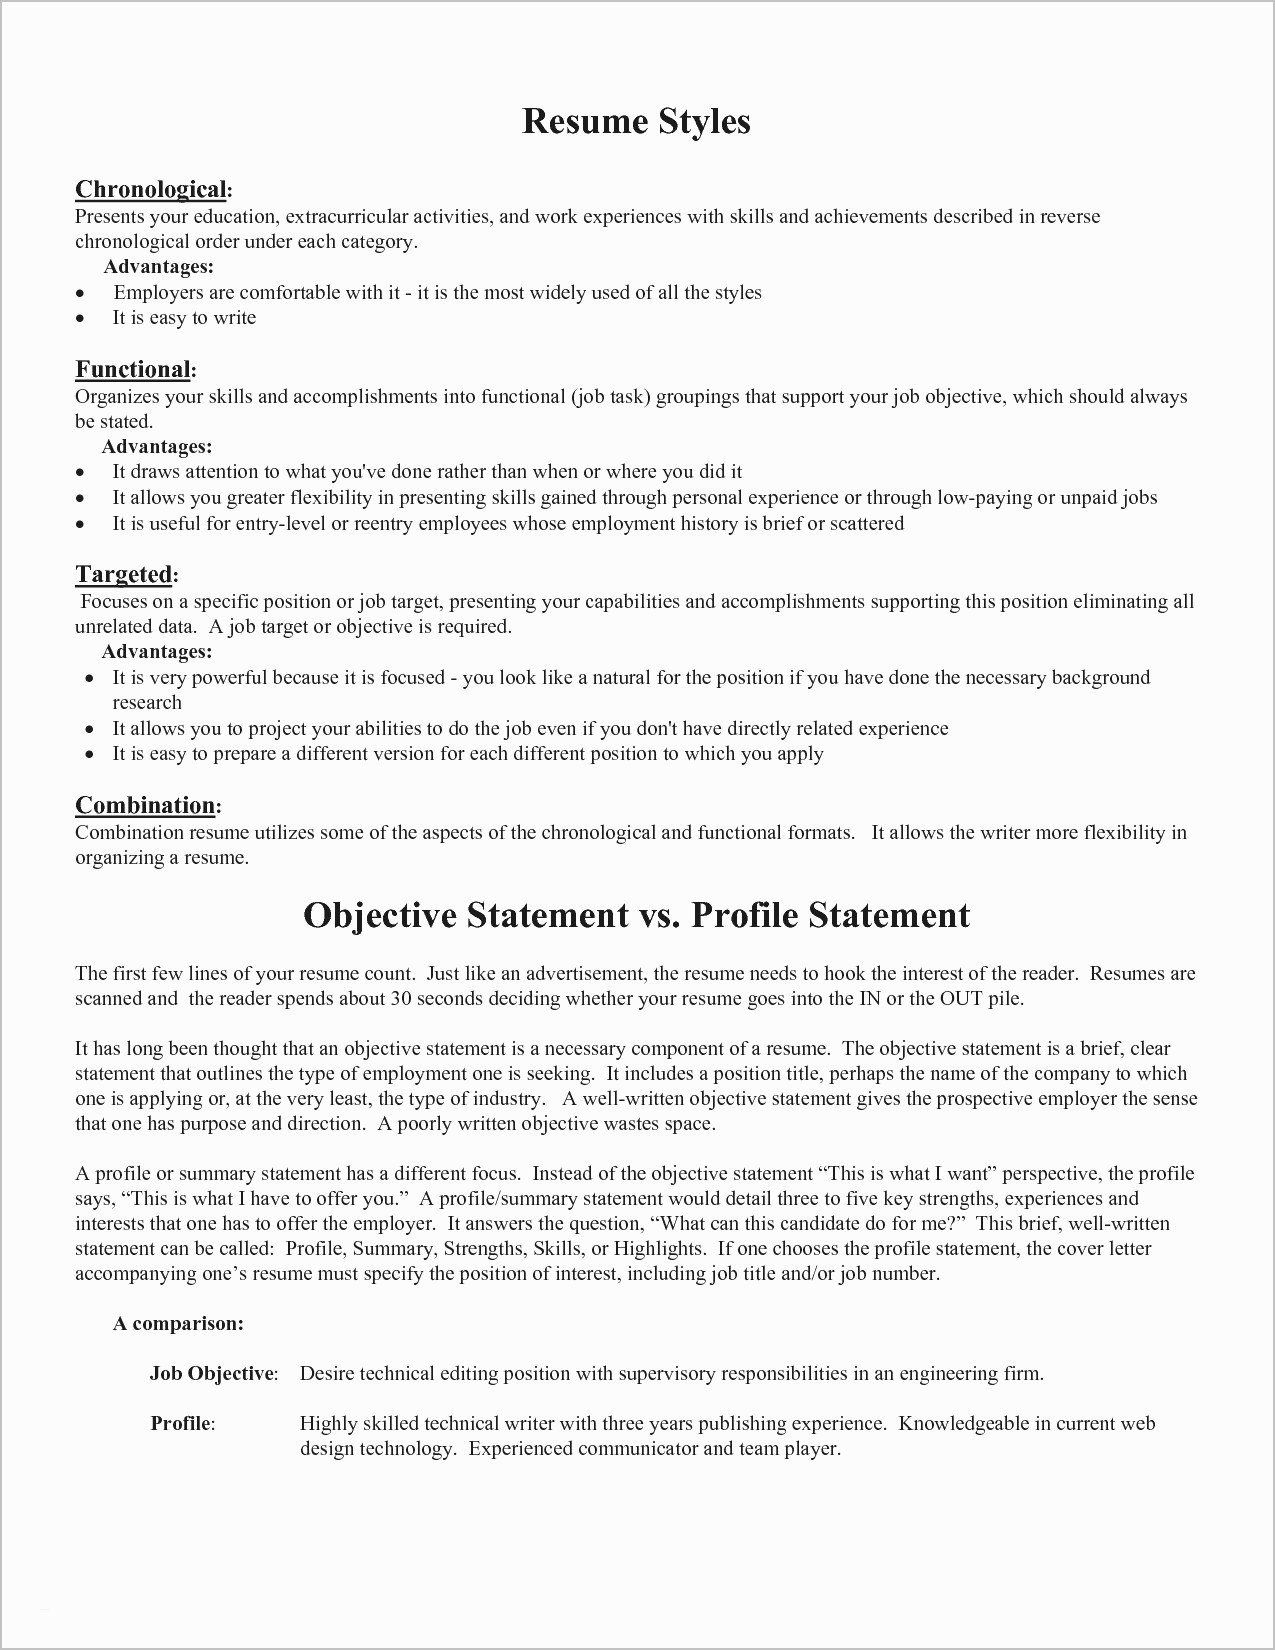 Sample Resume Objective Statements General Good